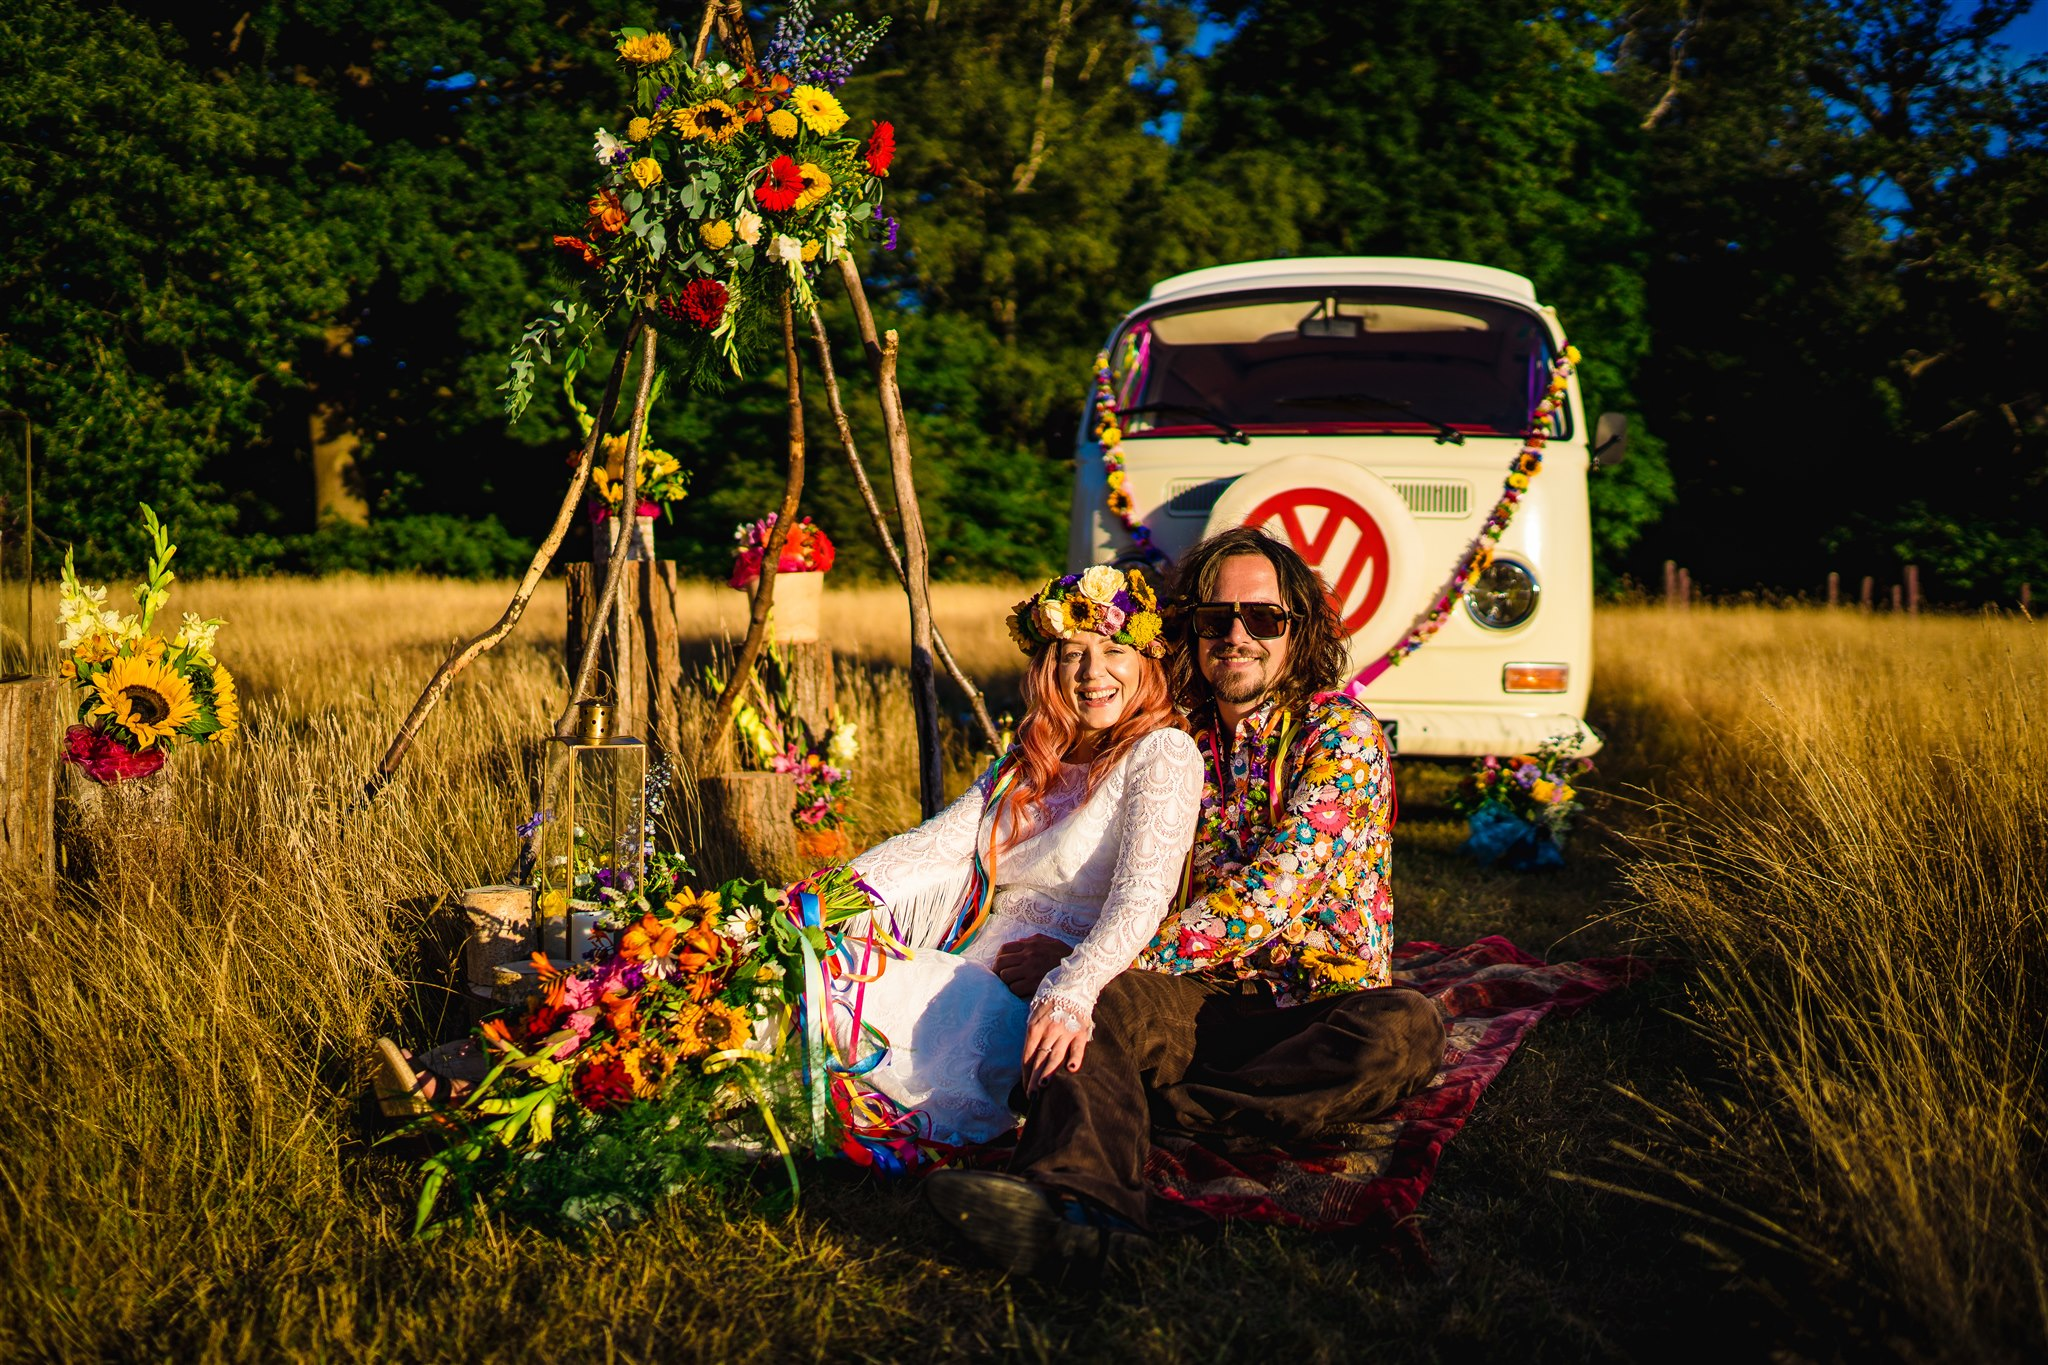 colourful bohemian wedding - 70s wedding - campervan wedding - hippie wedding - rainbow wedding